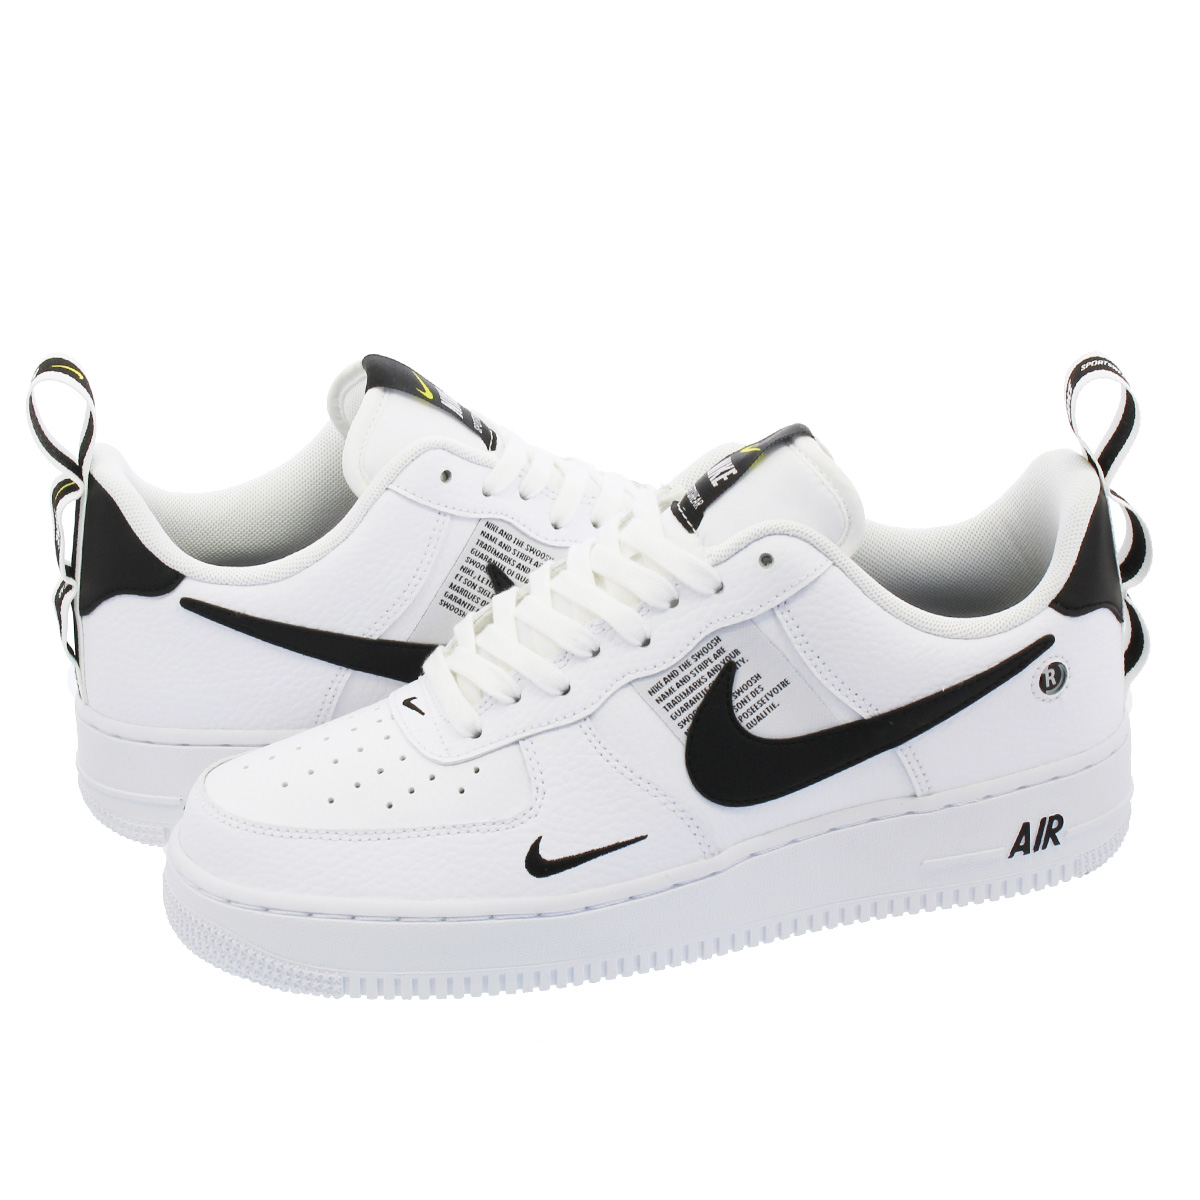 nike air force 1 '07 lv8 utility wit